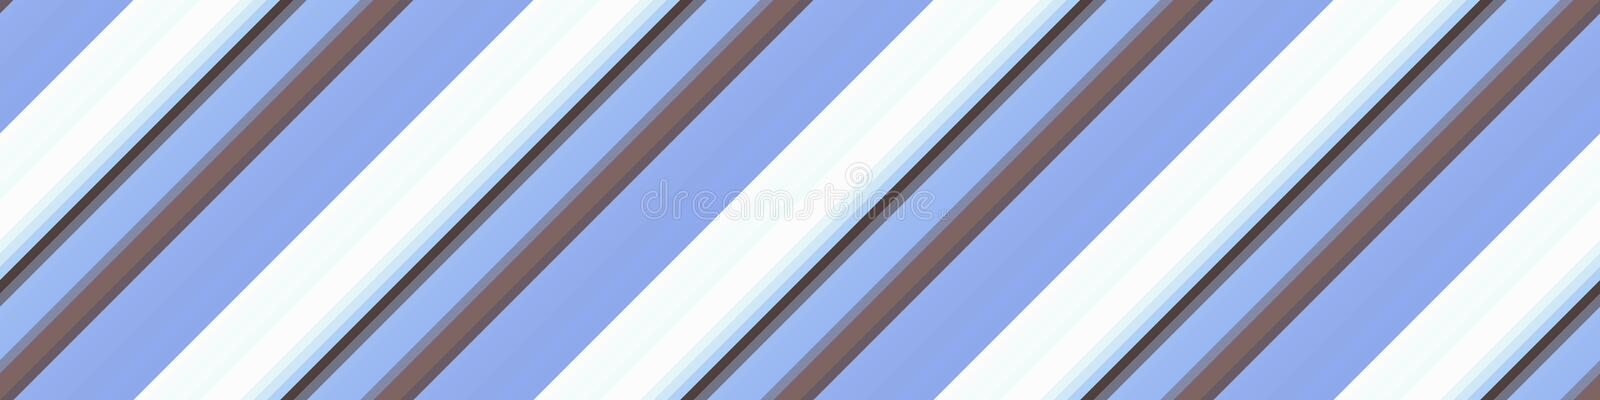 Seamless diagonal stripe background abstract,  geometric cover royalty free stock image